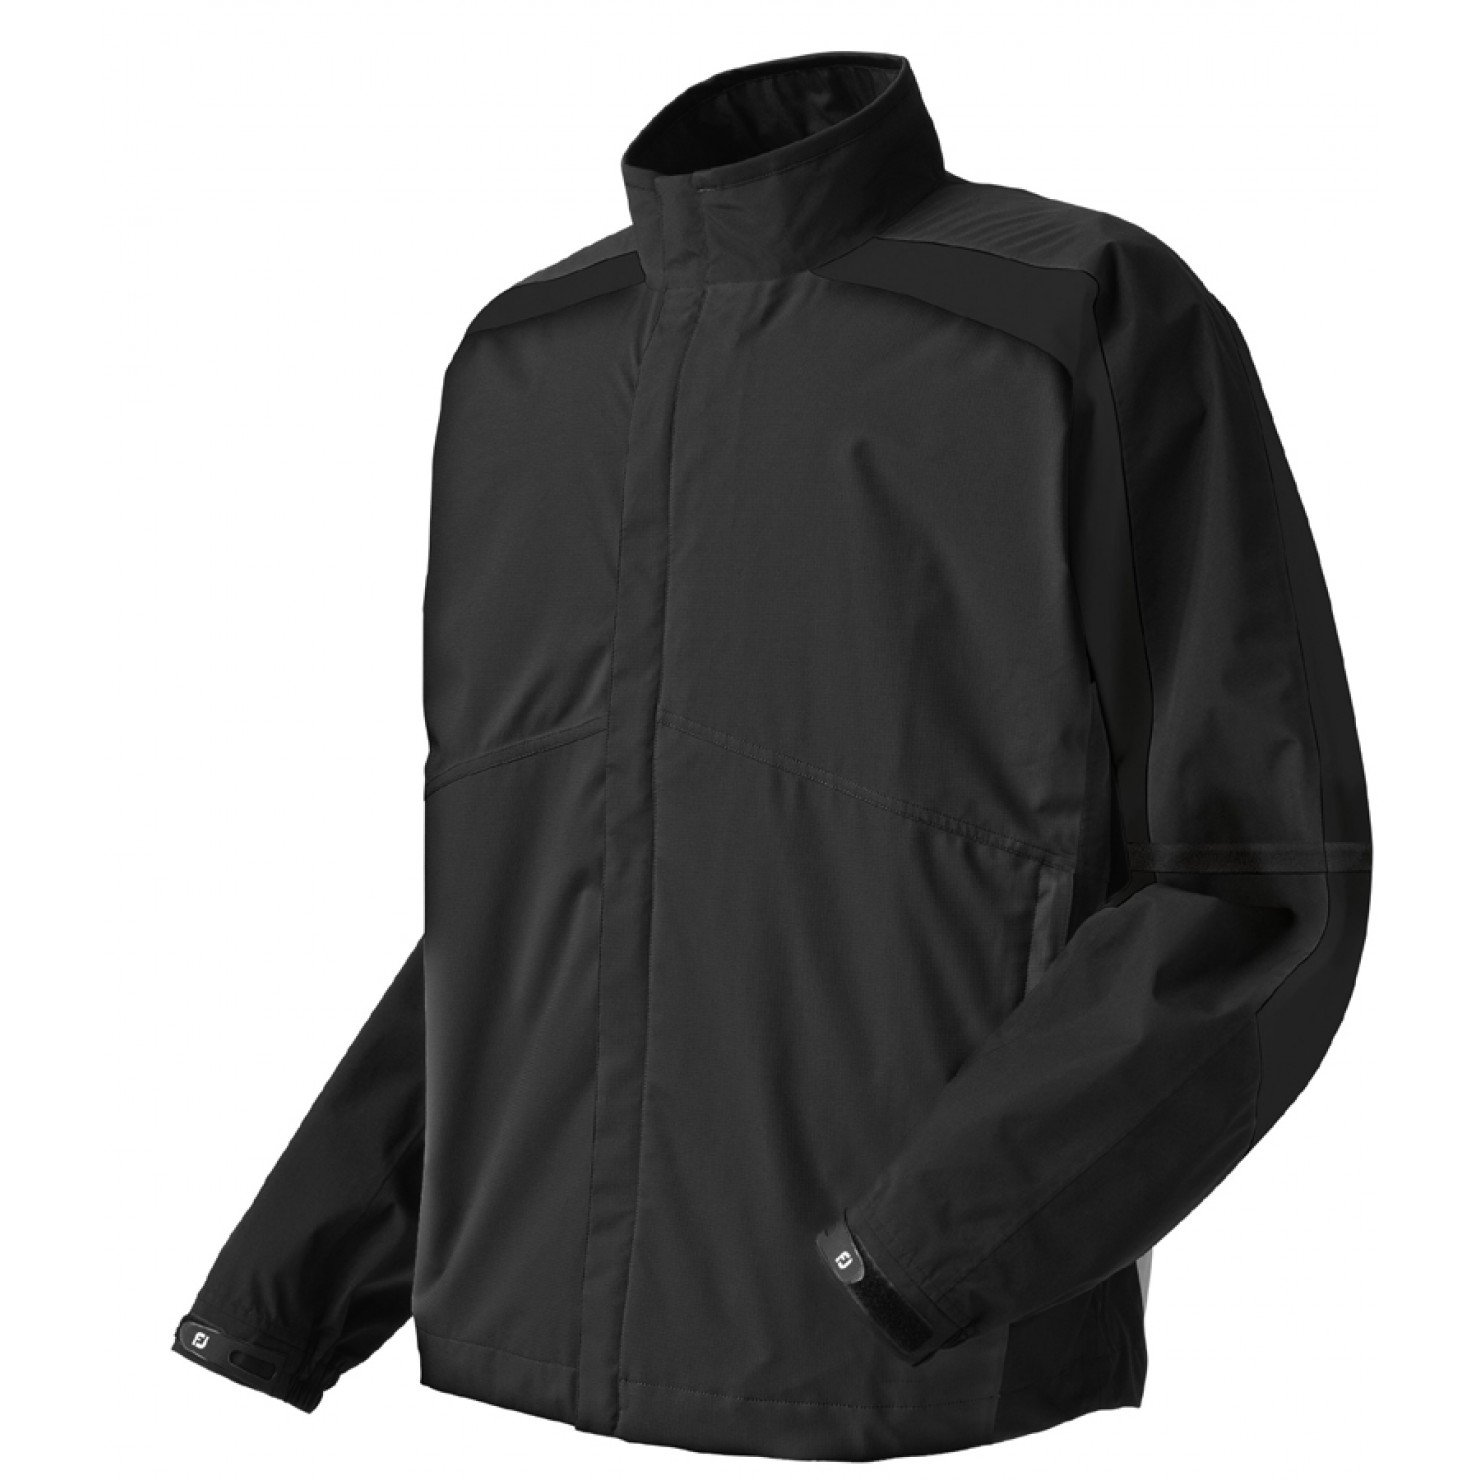 FootJoy HydroLite Rain Golf Jacket 2017 Black Small by FootJoy